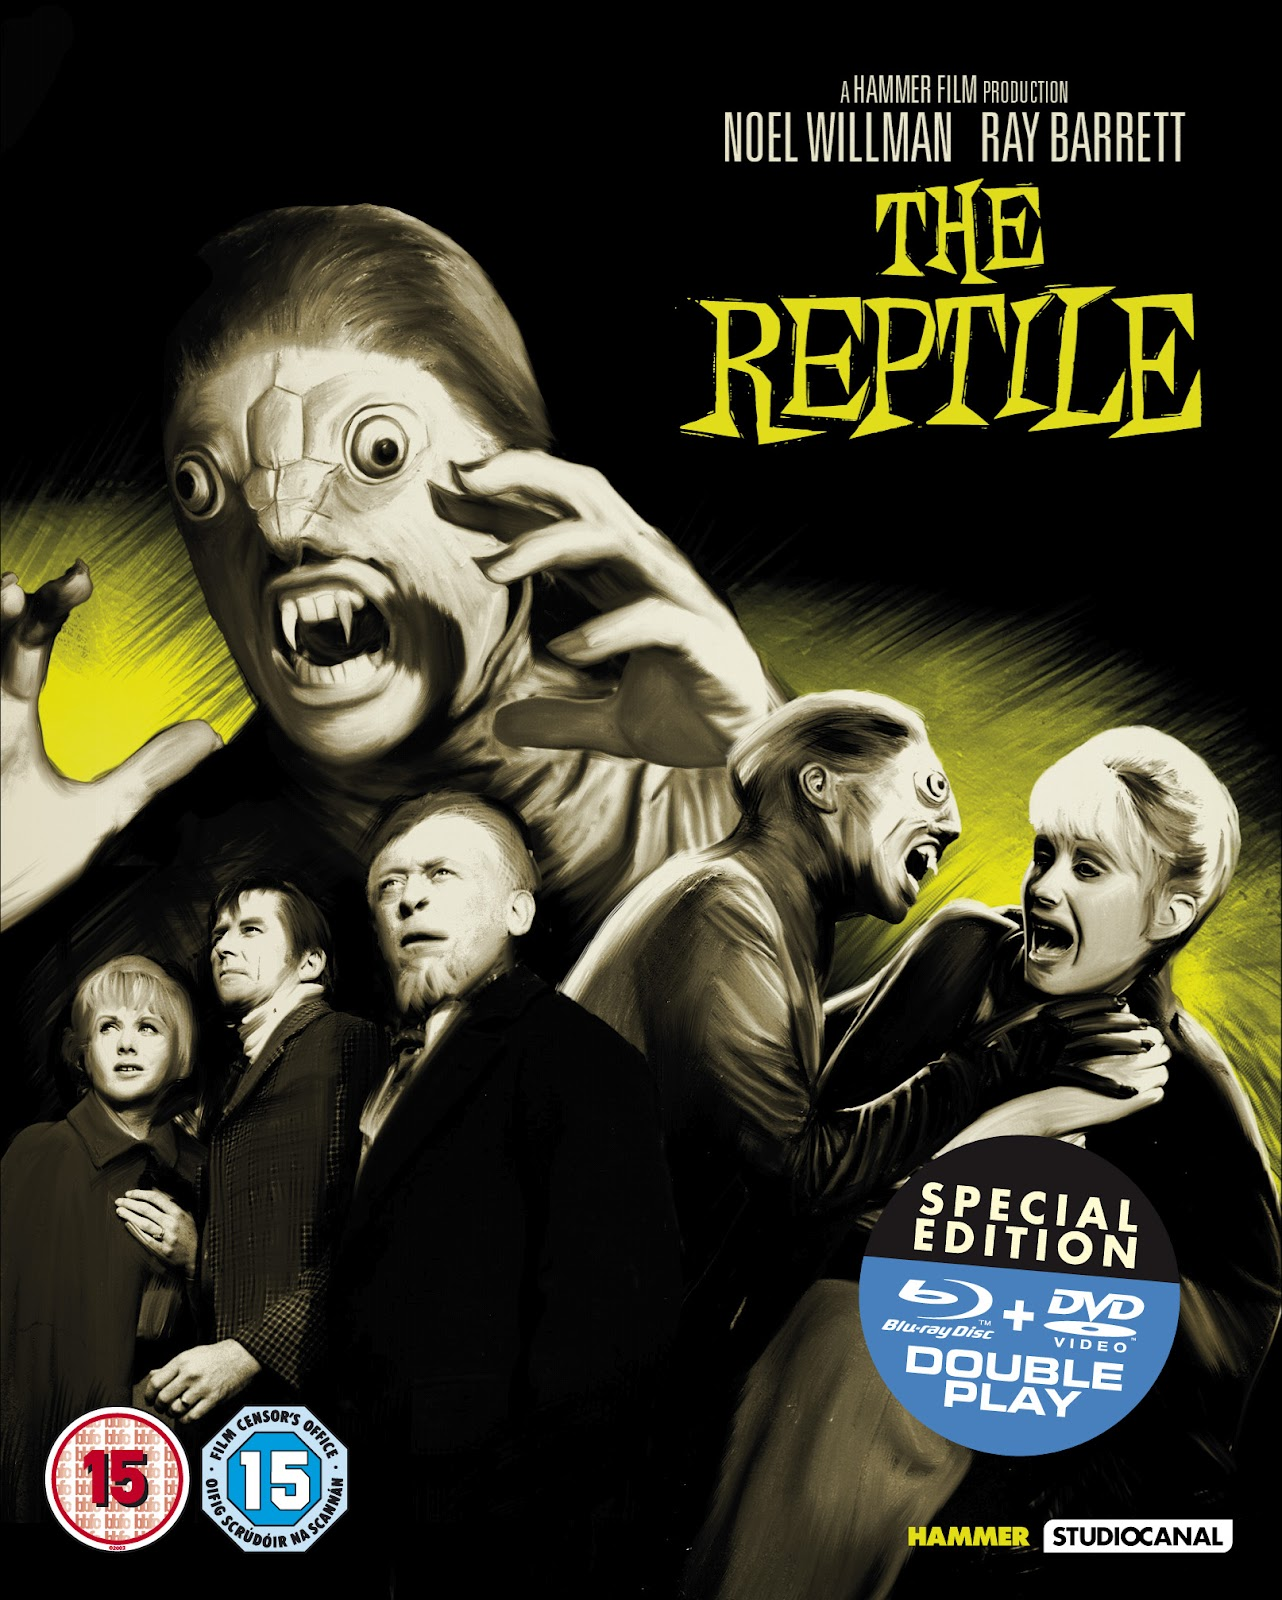 Cathode Ray Tube  BRITISH CULT CLASSICS  The Reptile   Blu-Ray Review 1460680ea